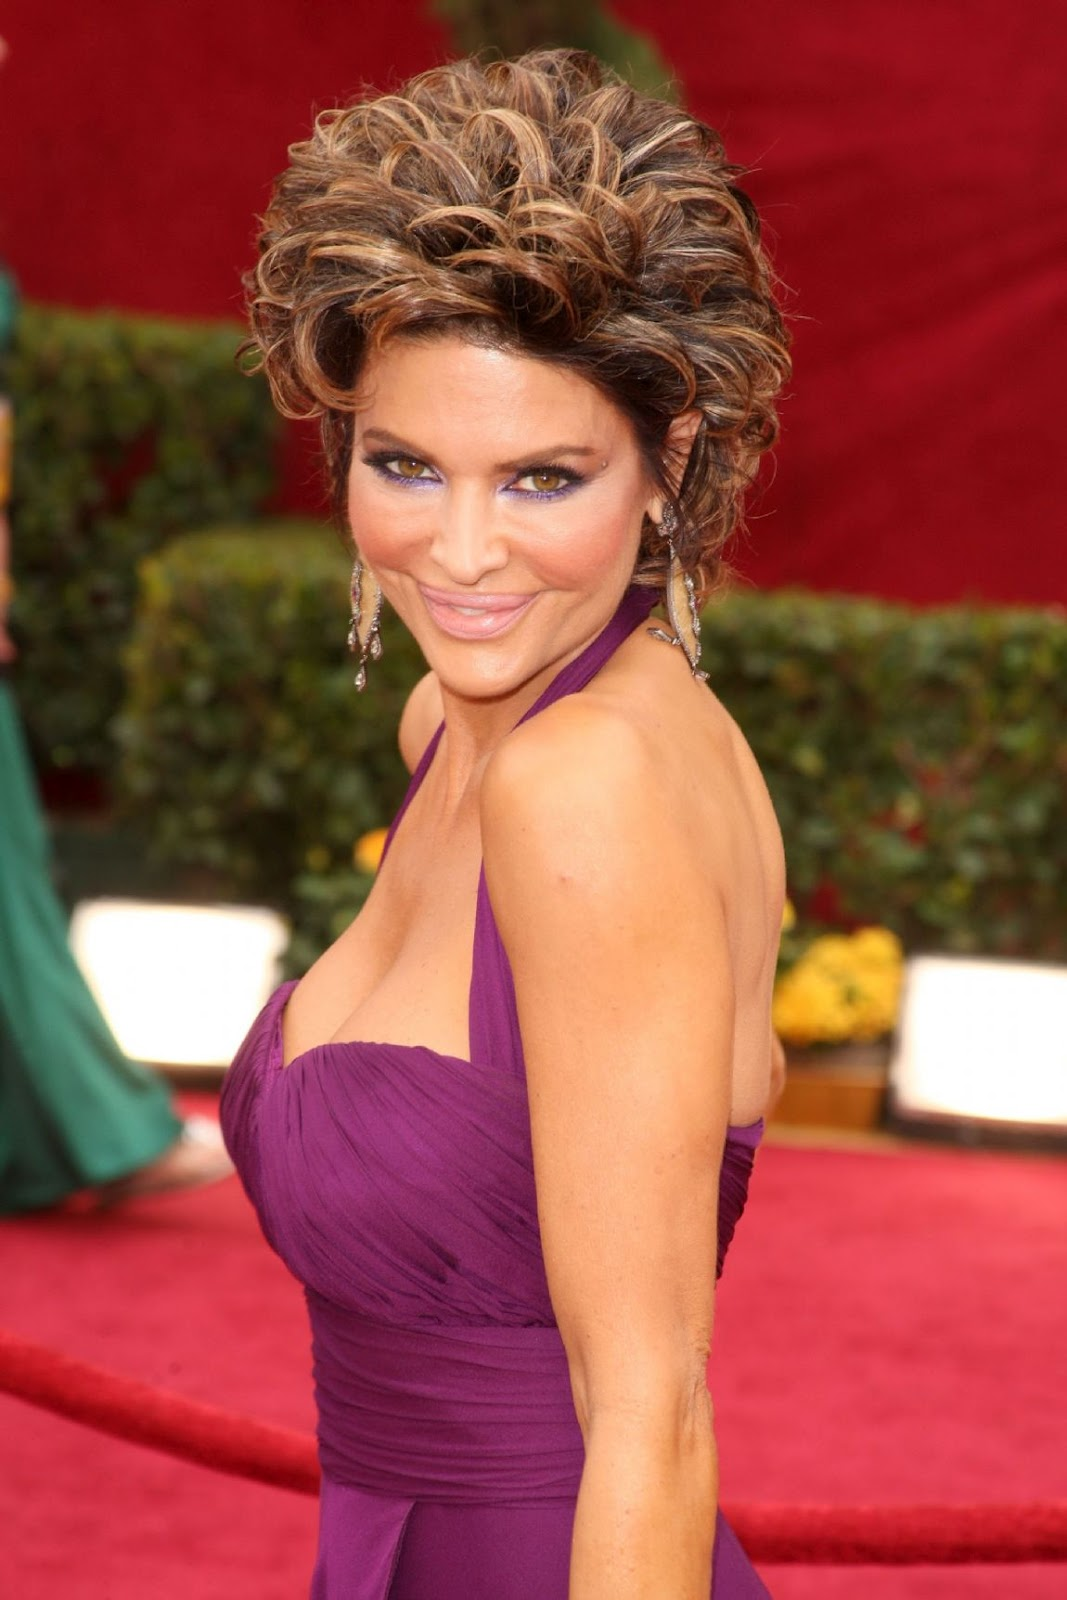 Phenomenal Hairstyle Pictures Lisa Rinna Hairstyle Pictures Lisa Rinna Hairstyles For Men Maxibearus